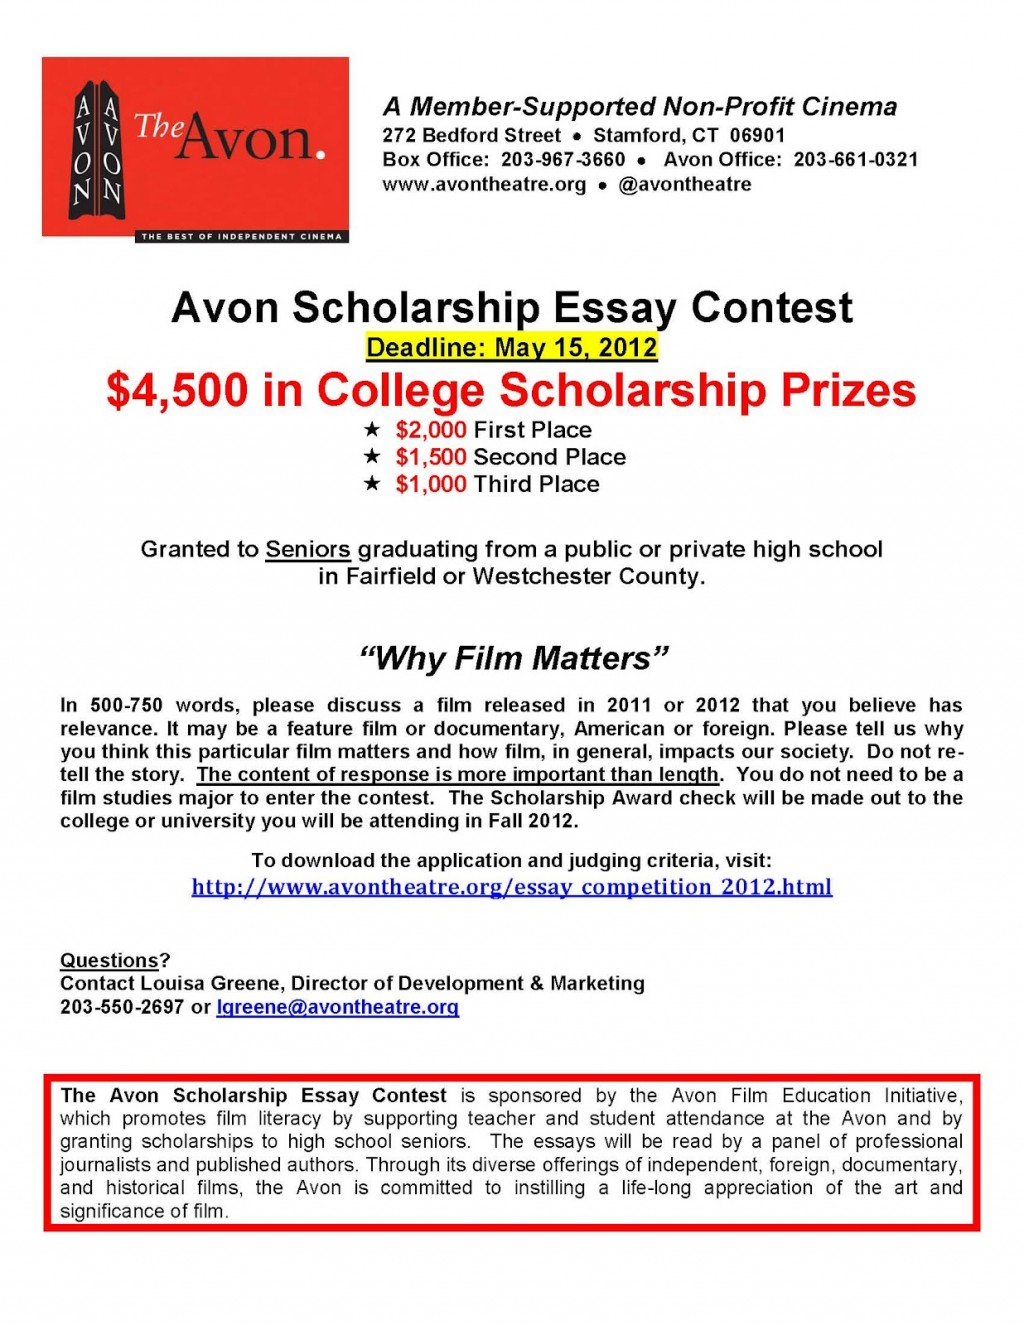 004 Scholarship Essay Contest Avonscholarshipessaycontest2012flyer Astounding Contests For High School Students 2019 Middle Large